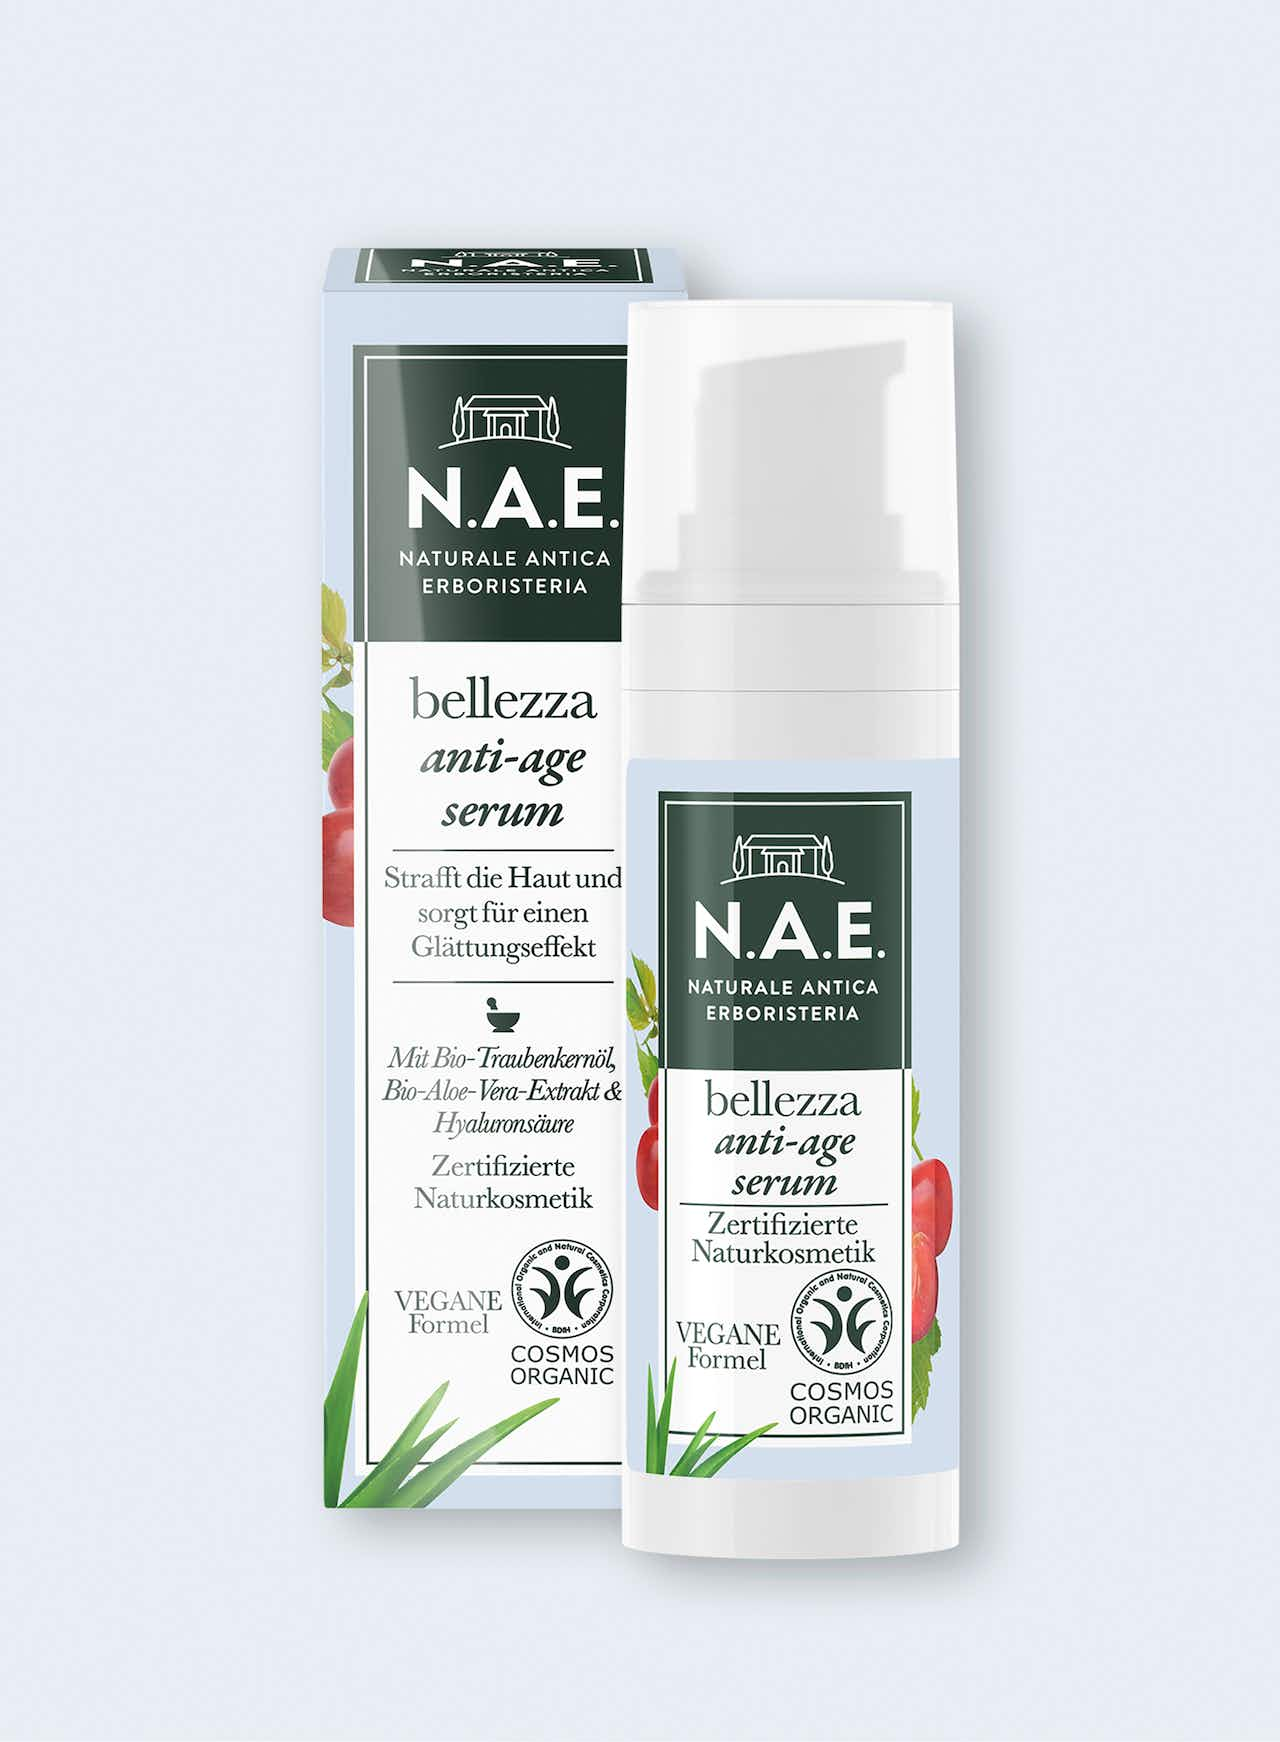 bellezza anti-age serum, 30ml